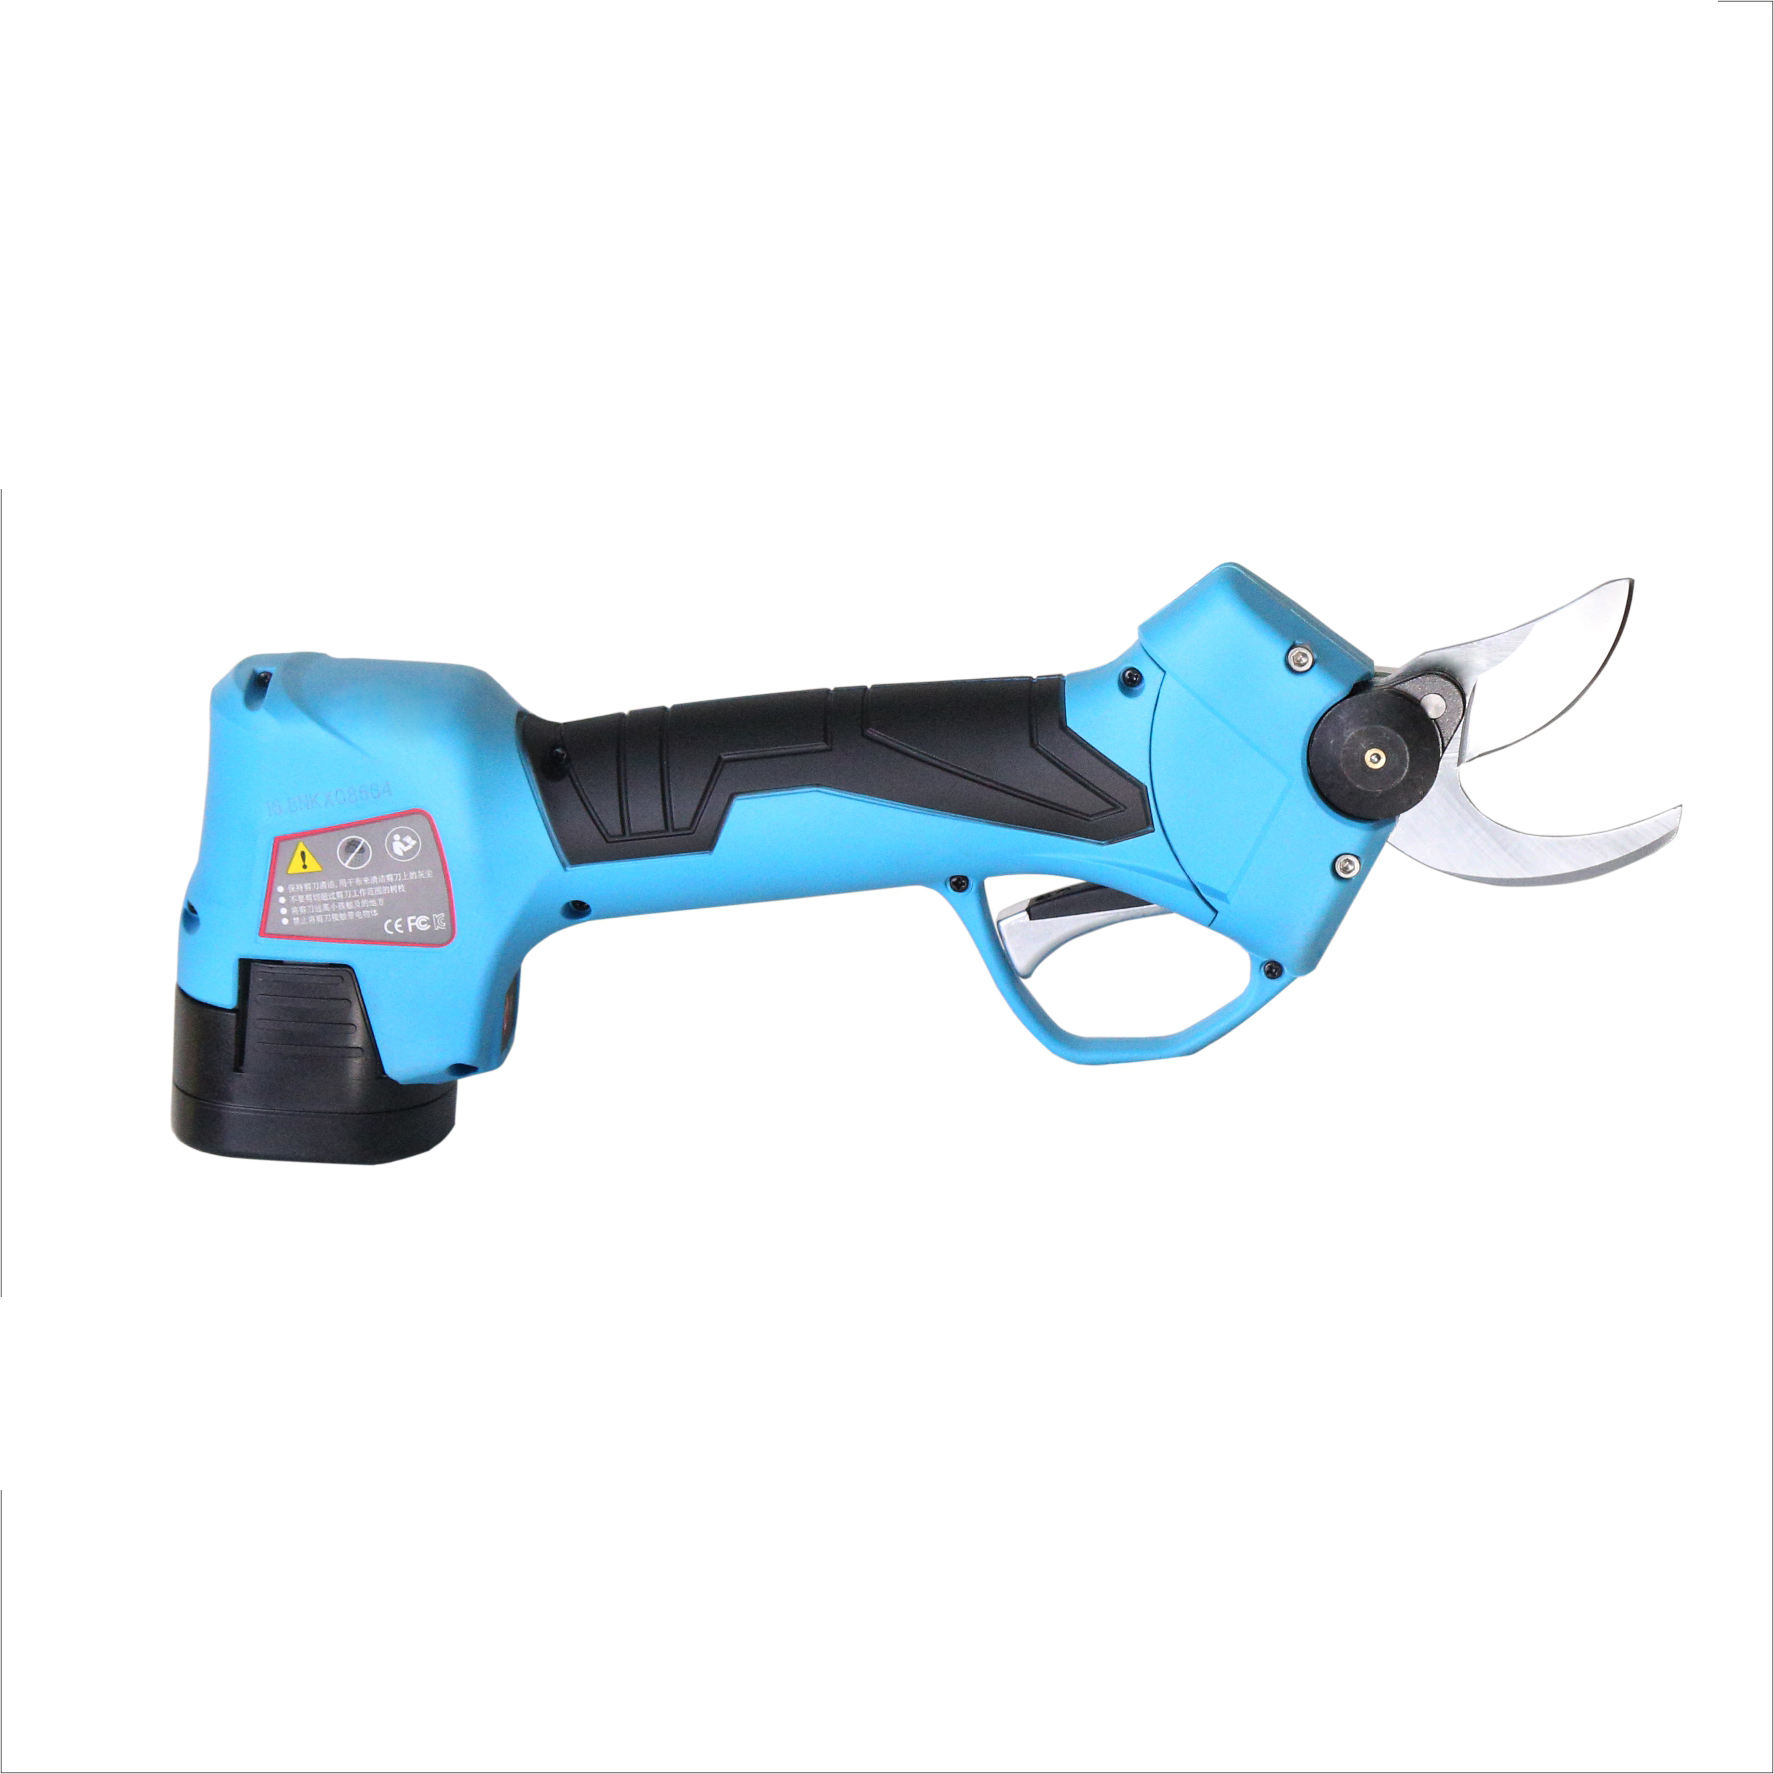 New Designed Li-ion Battery Powered Tree Branch Cutting Electric Pruner